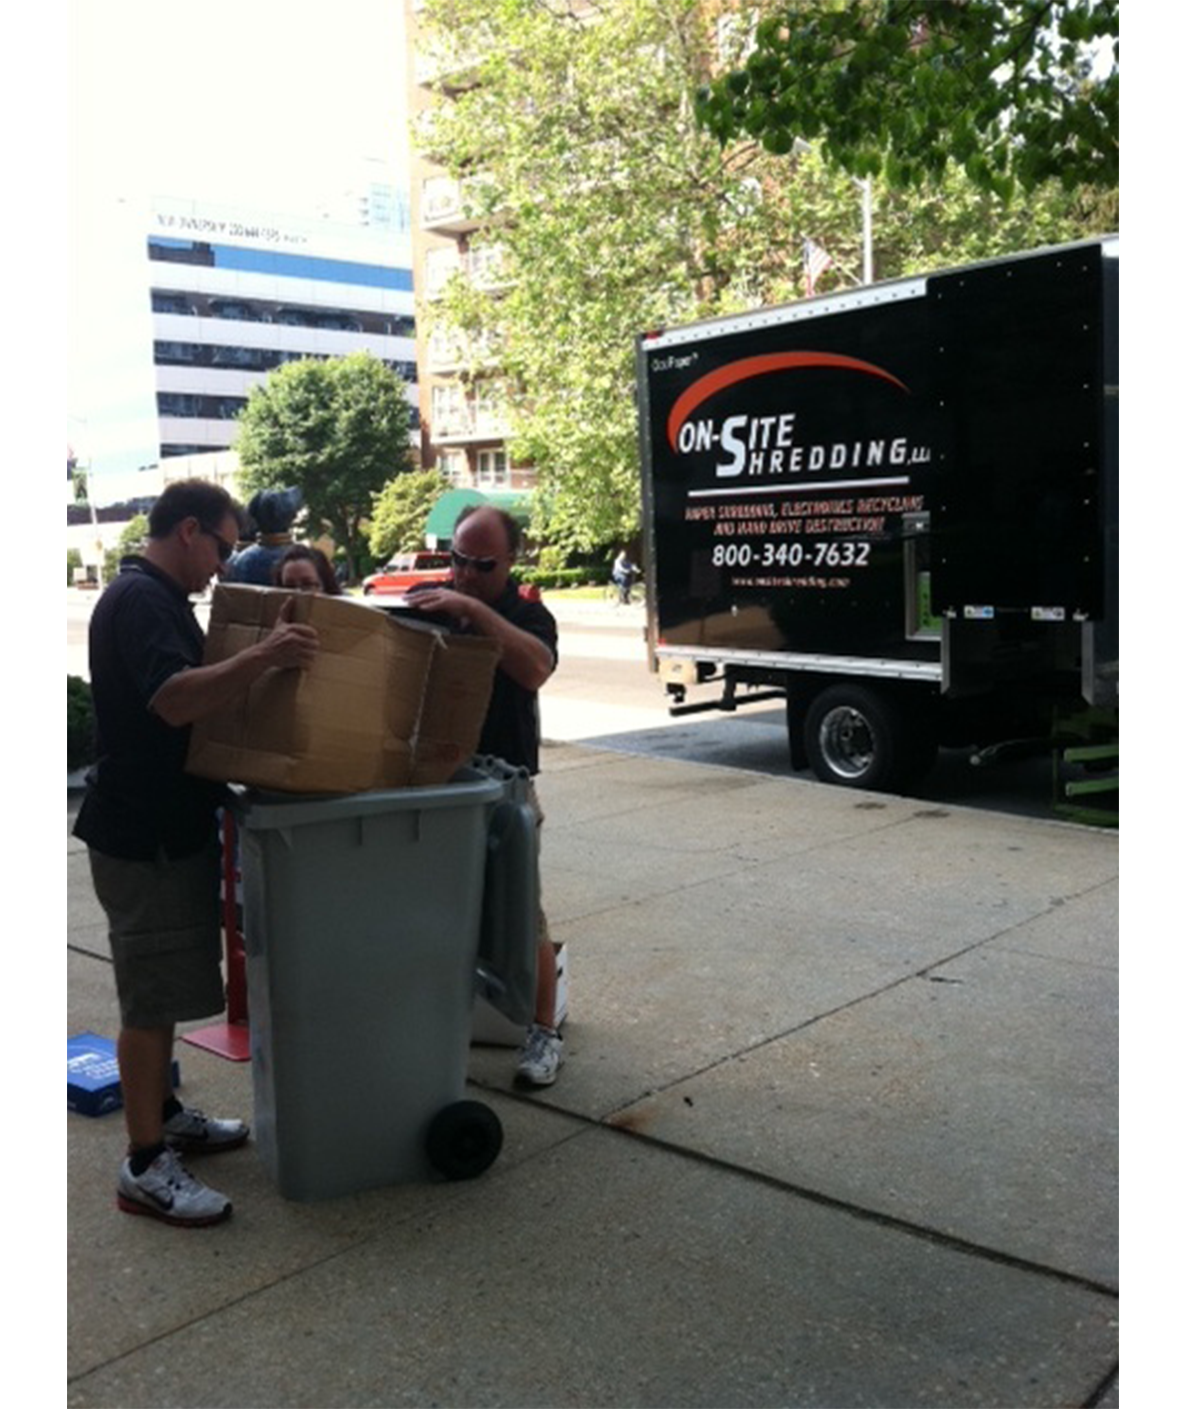 OnSite Shredding team at work